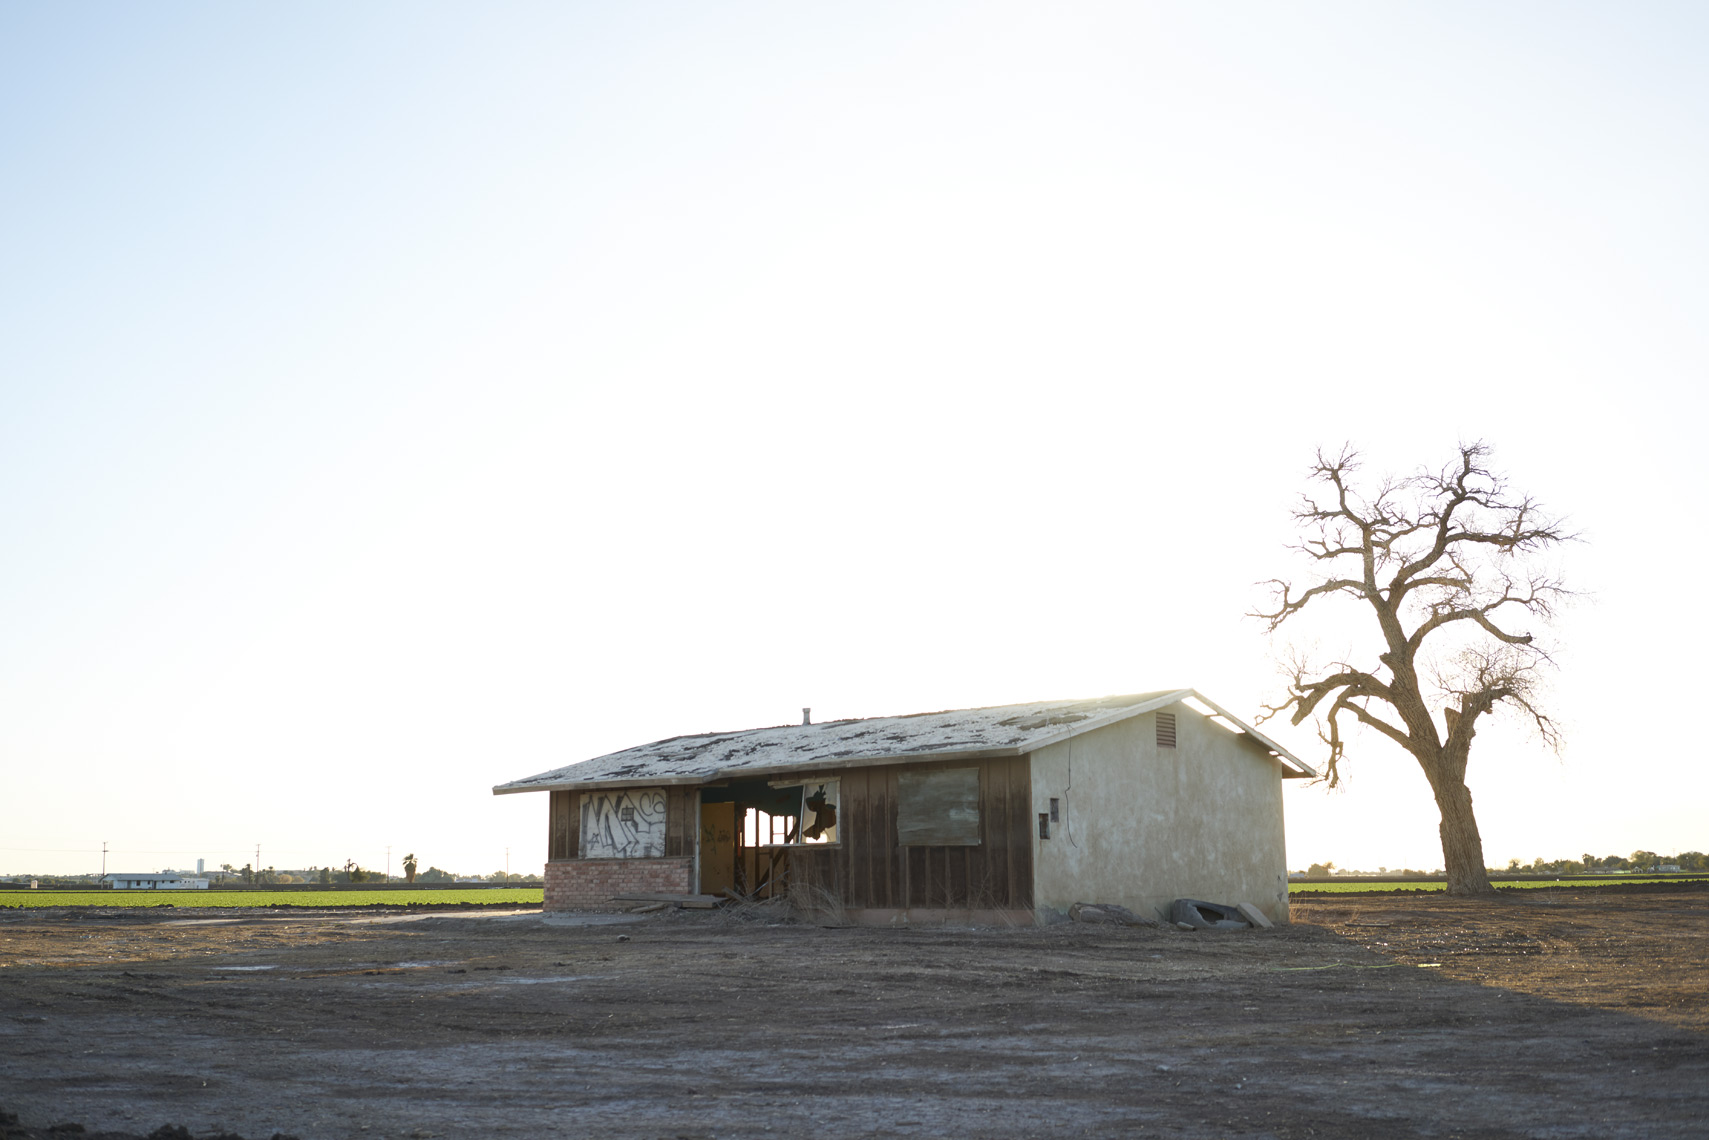 Abandoned shack on the outskirts of Yuma Arizona Sean Dagen Photography